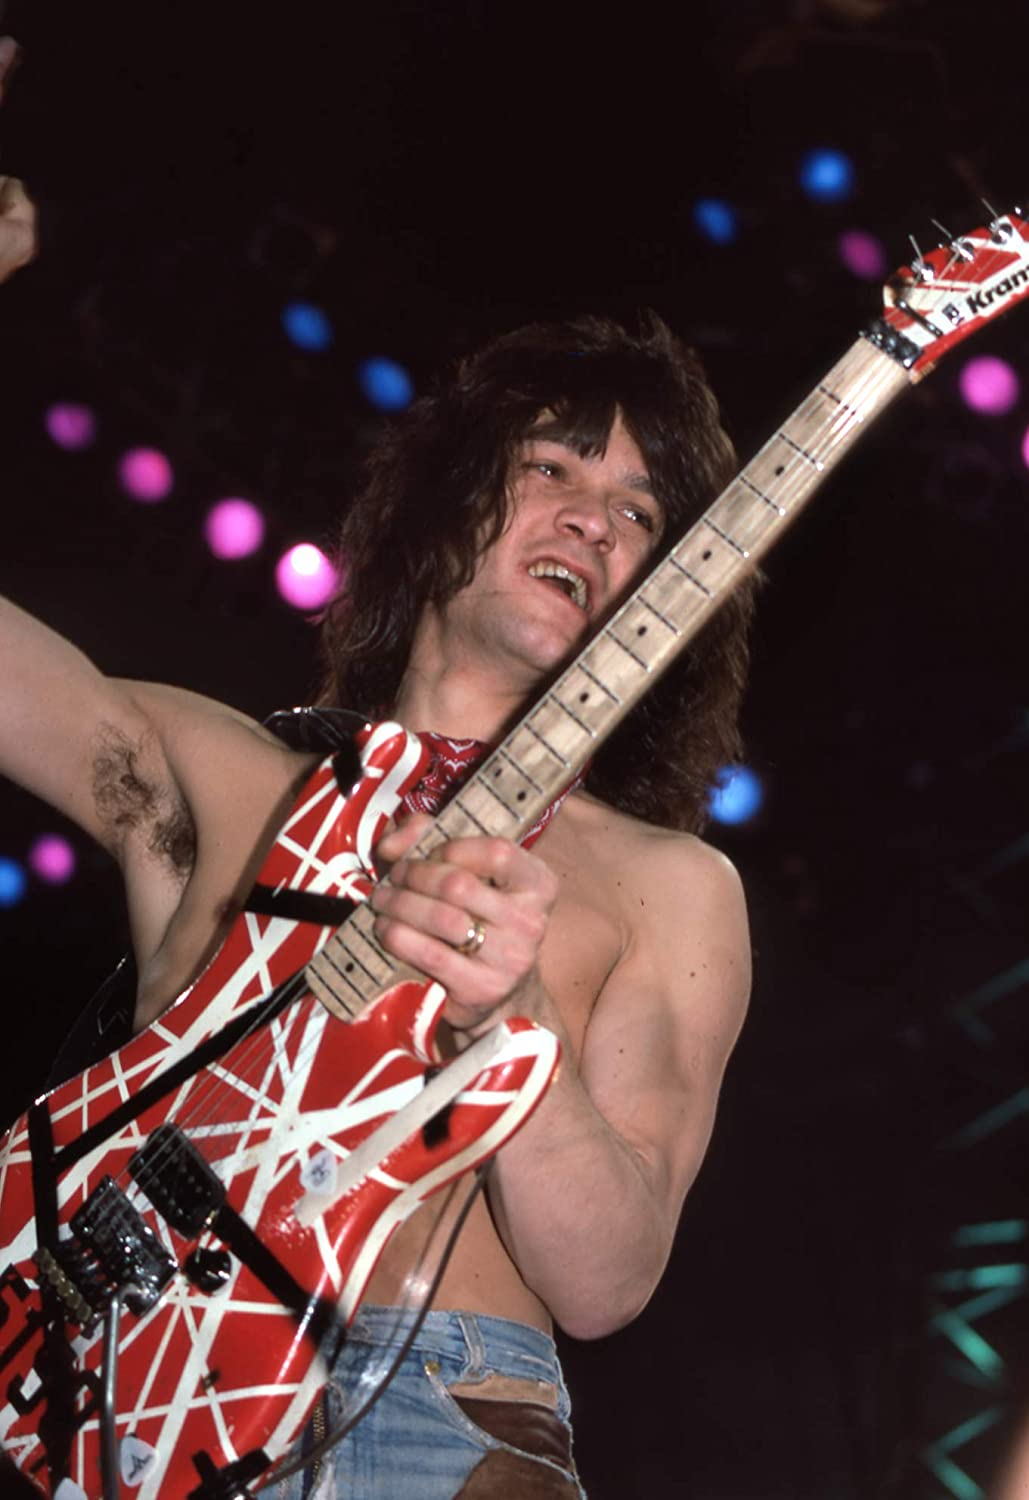 Art Print Poster Canvas Eddie Van Halen Plays Guitar In Concert